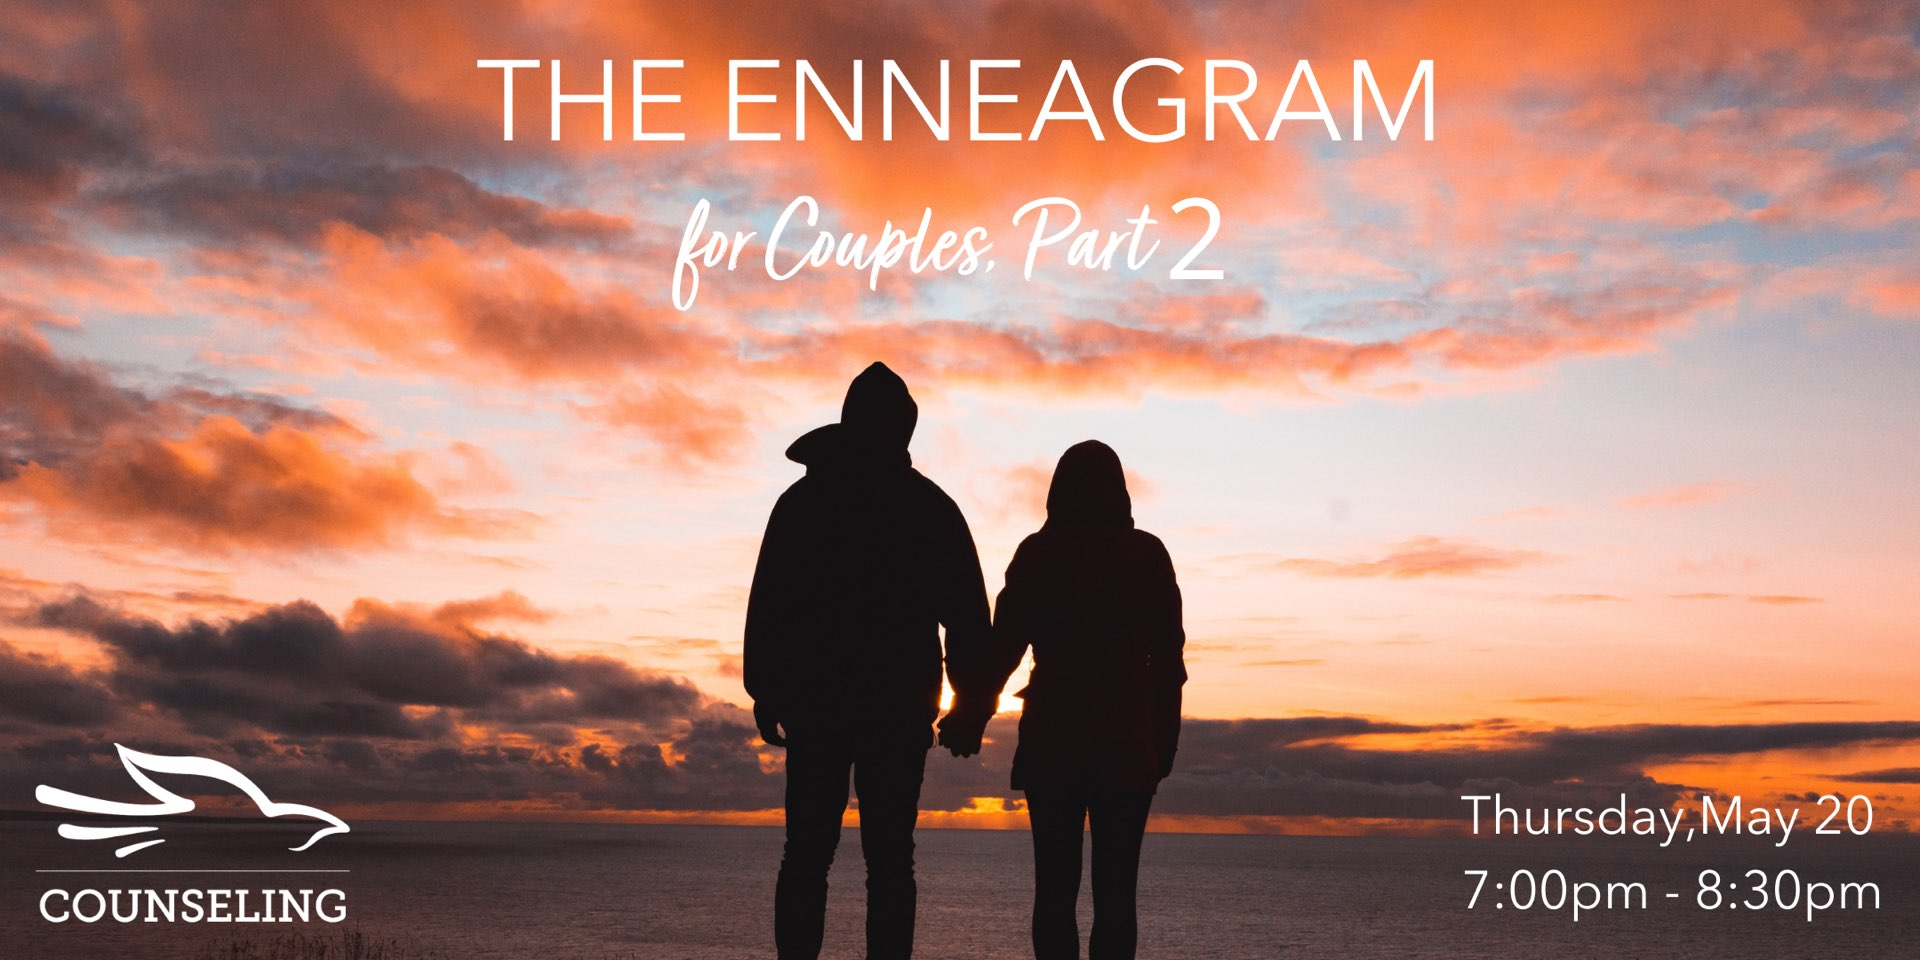 Enneagram for Couples Part 2 - Mary Wright - Christian Center of Park City Counseling Center